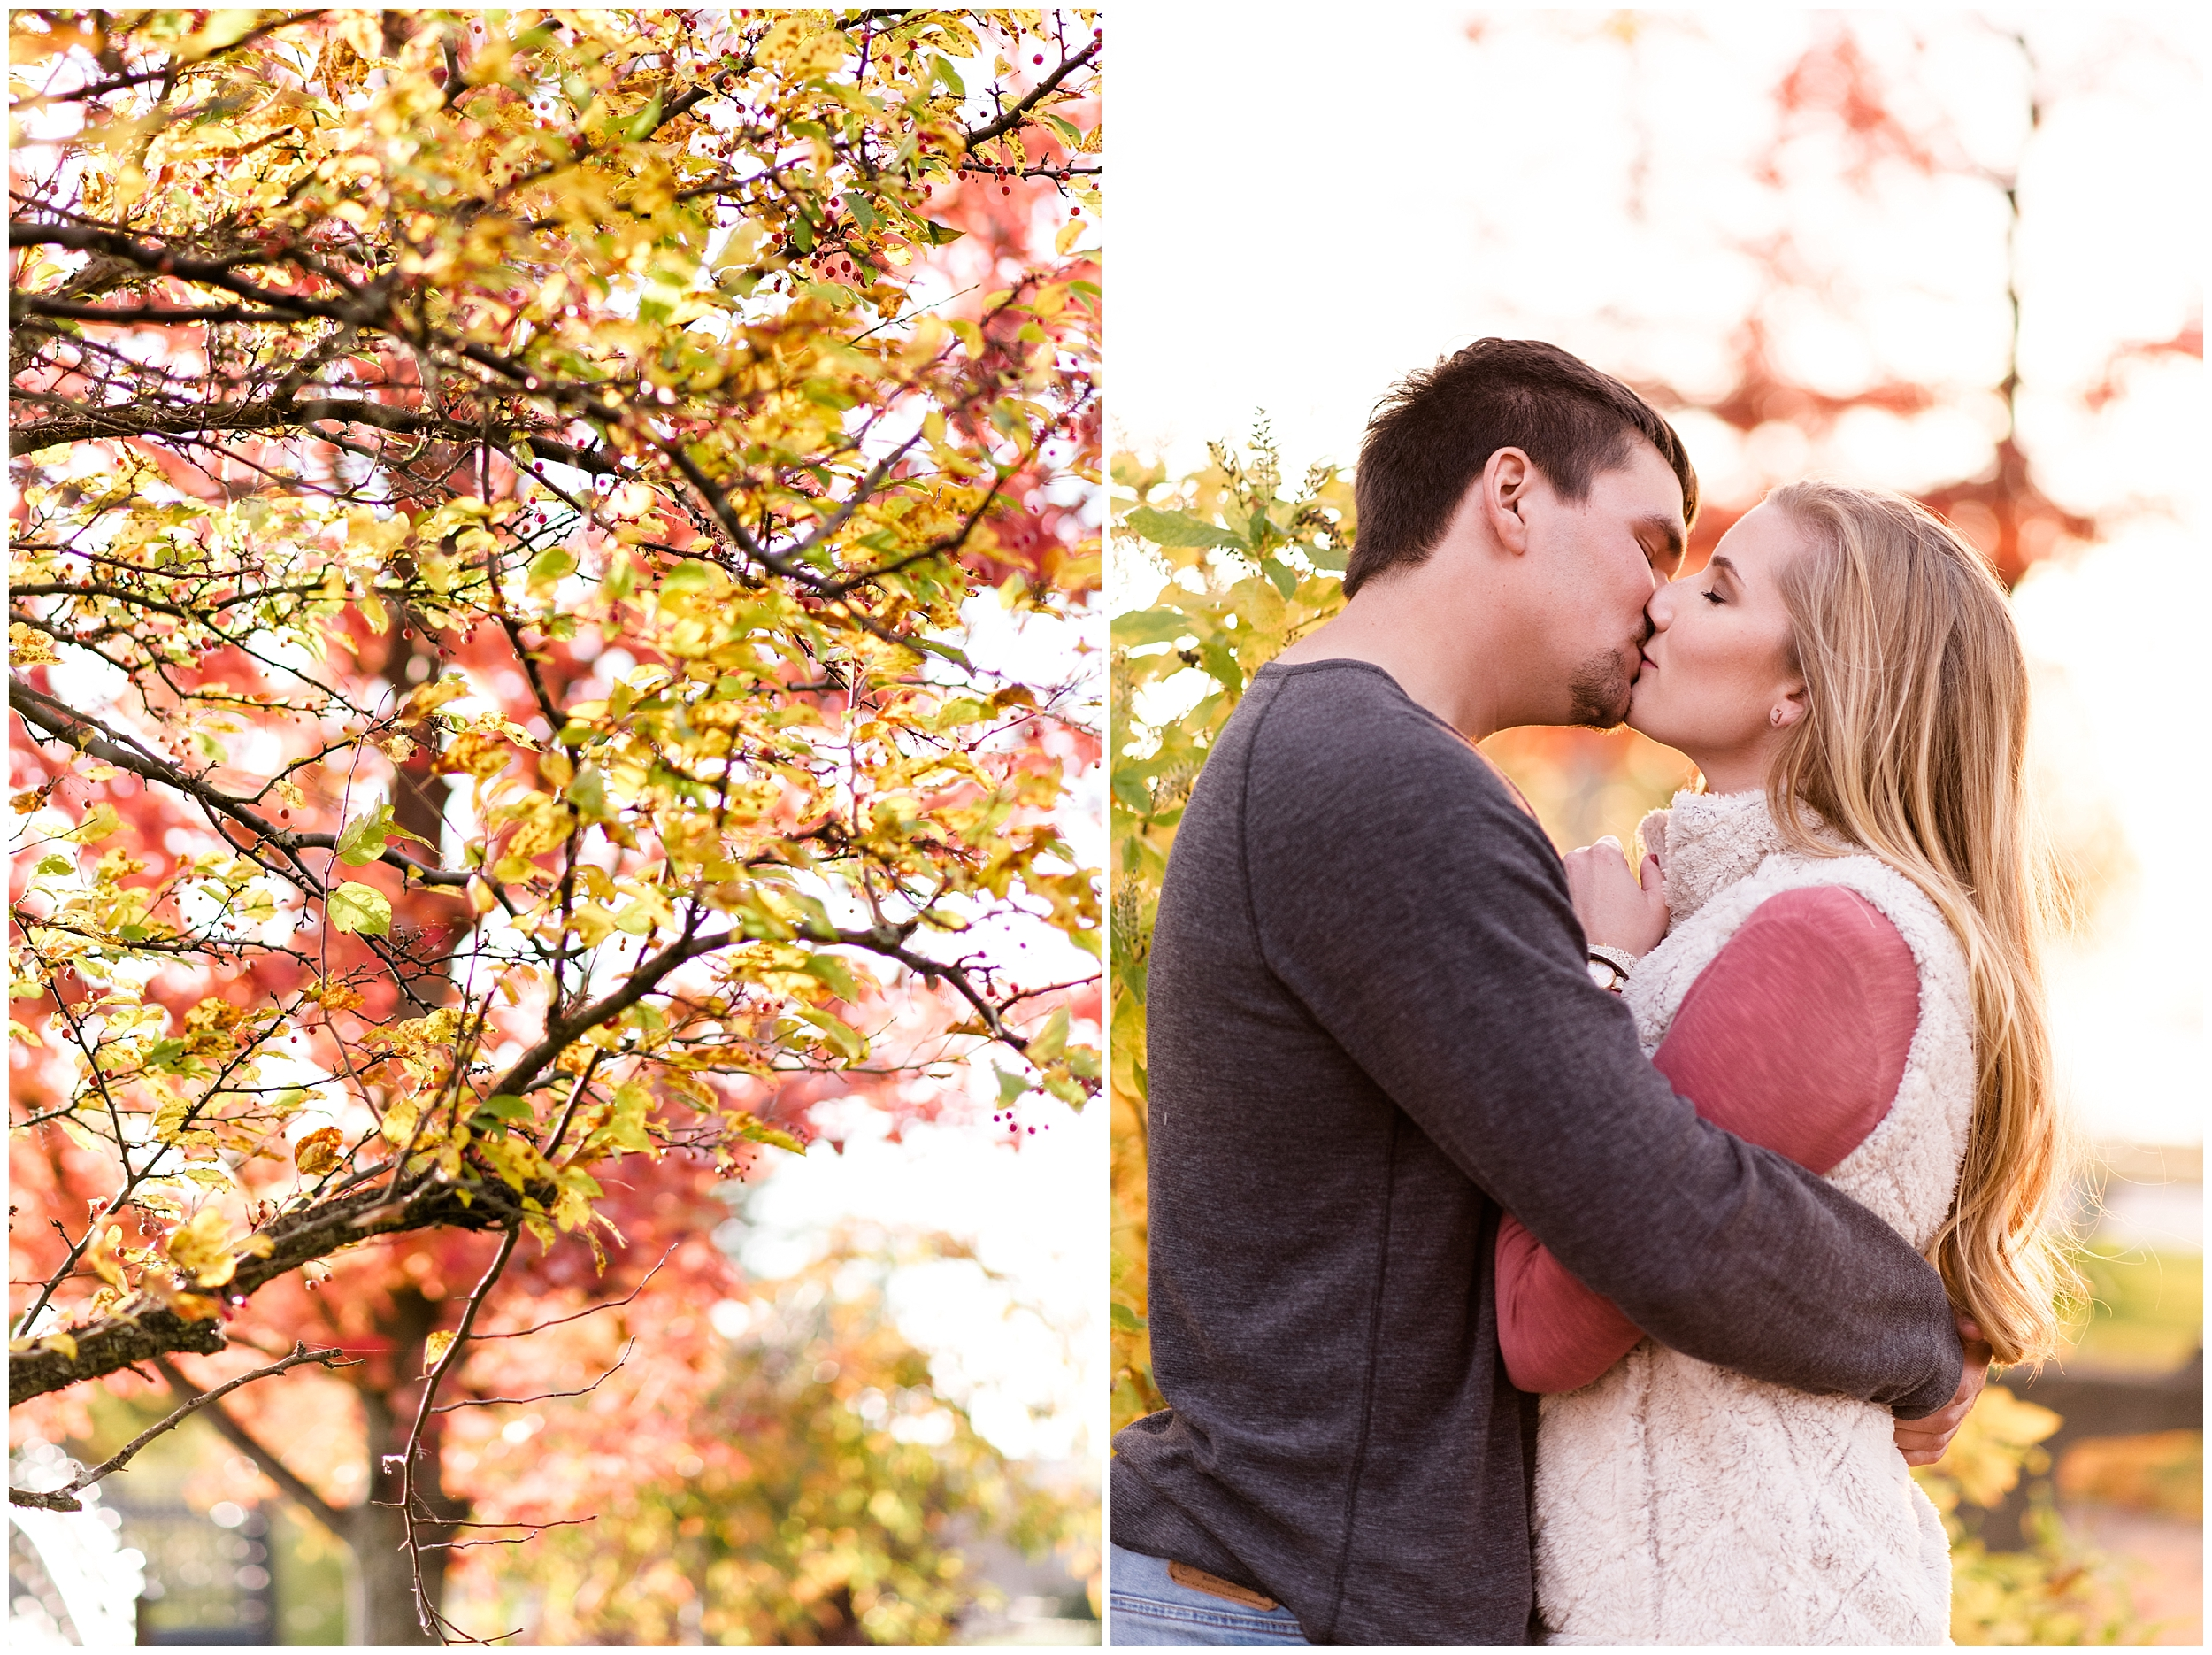 Weddings_by_Raisa_Photography_Cadillac_Michigan_October_Fall_Engagement_Milwaukee_Wisconsin_Photographer_0019.jpg